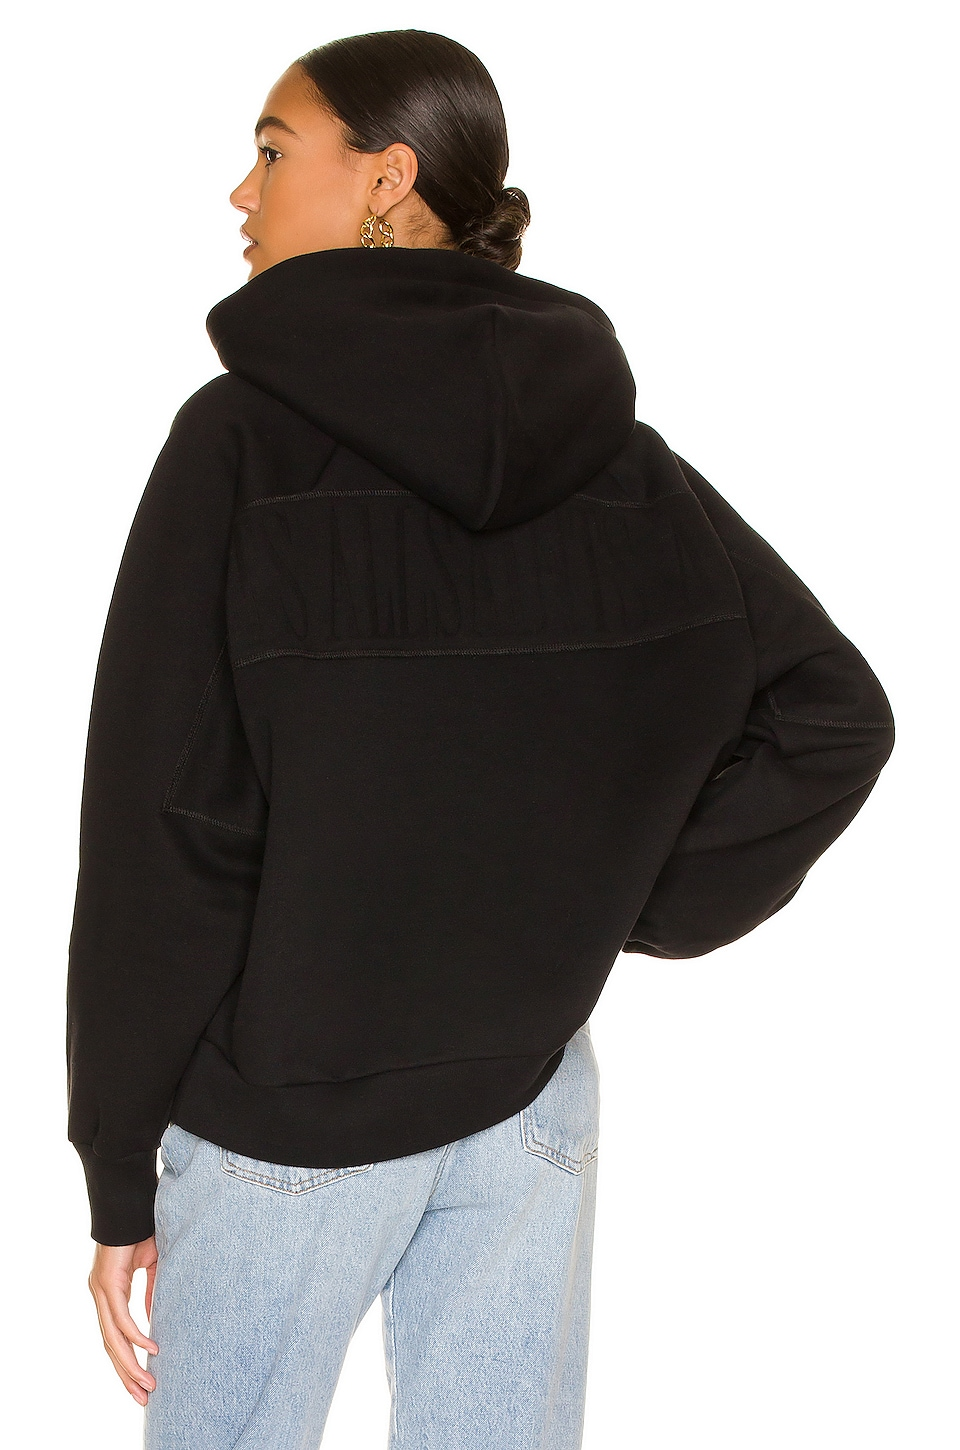 ALLSAINTS Talon Hoody in Black